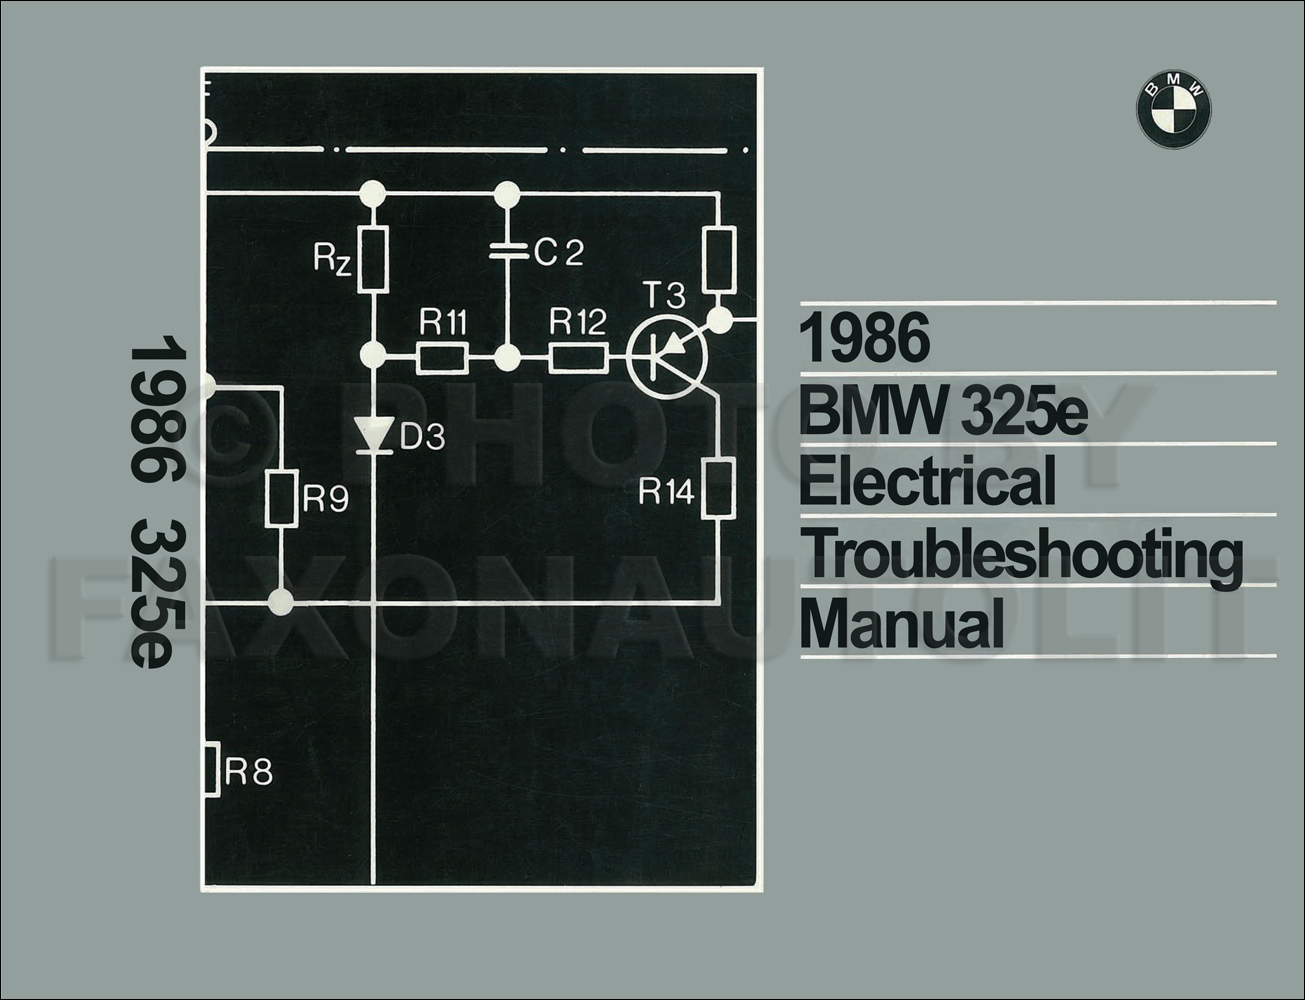 1986 BMW 325e Electrical Troubleshooting Manual Reprint